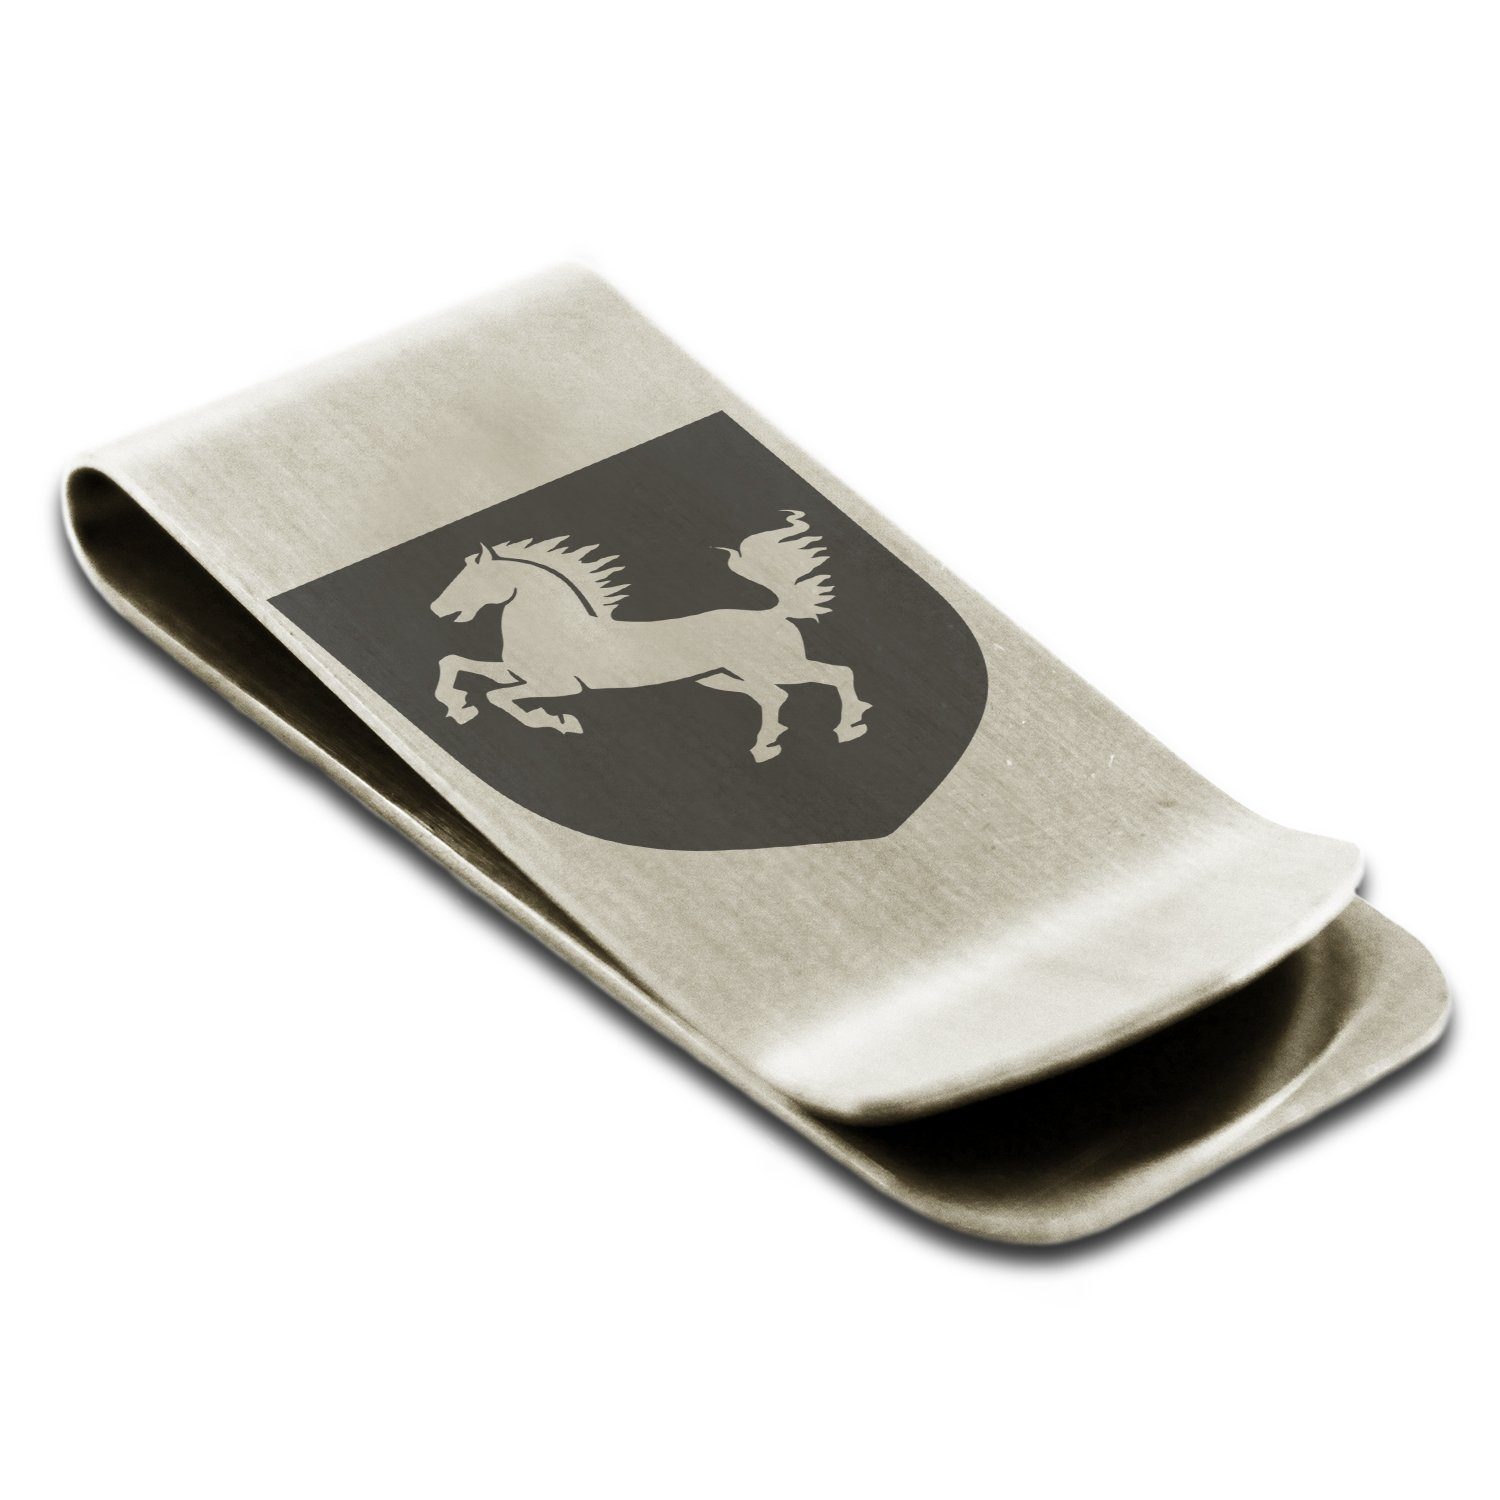 Stainless Steel Horse Battle Coat of Arms Shield Symbol Engraved Money Clip Credit Card Holder